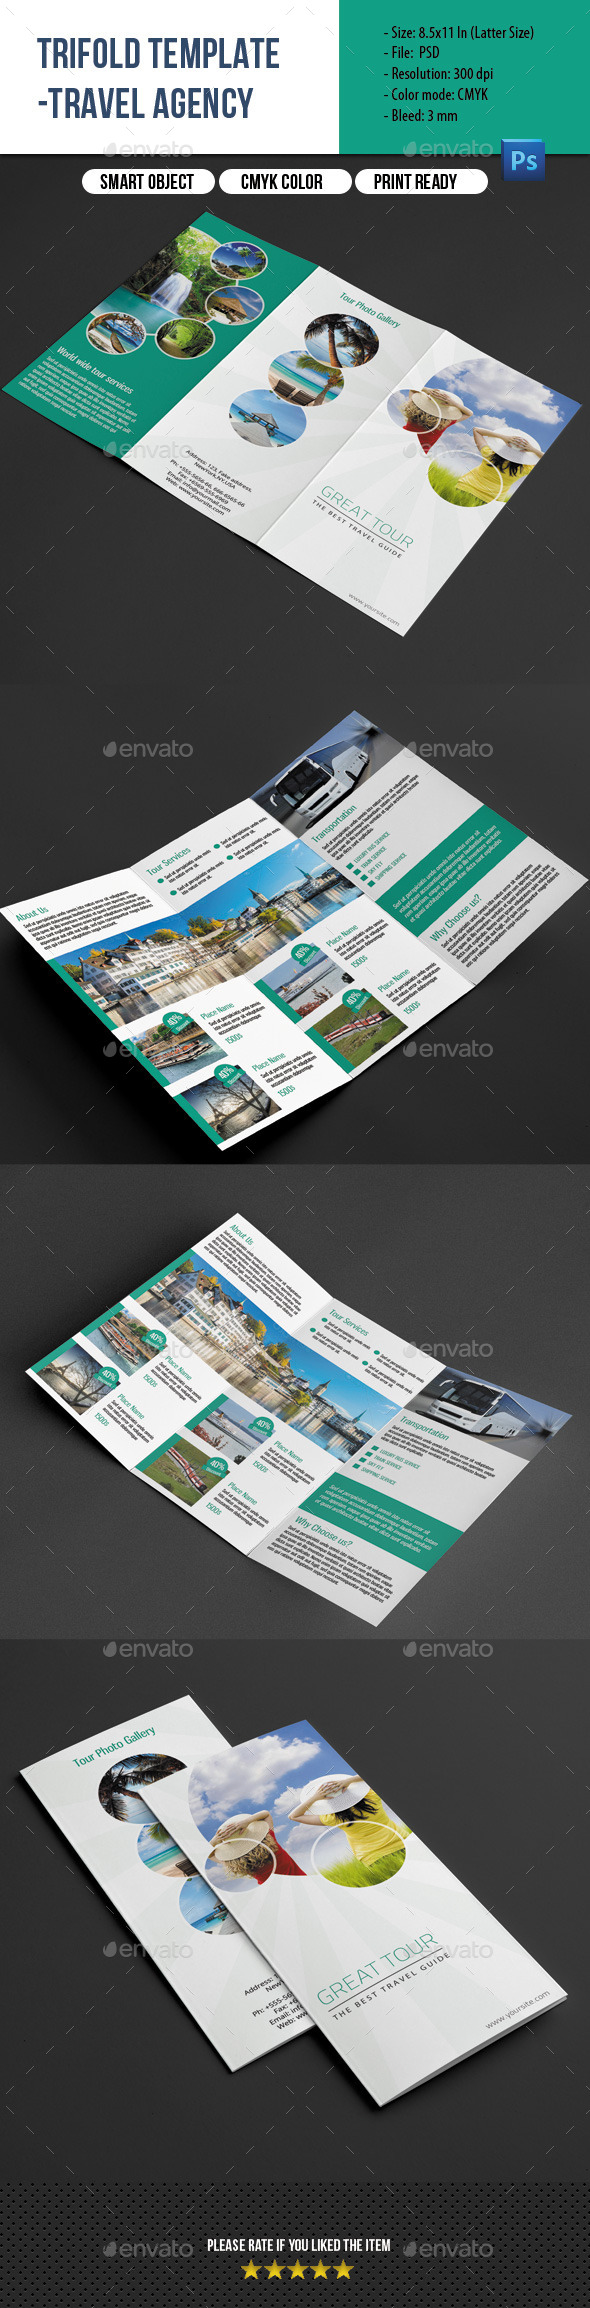 GraphicRiver Travel Agency Trifold Brochure 9066843